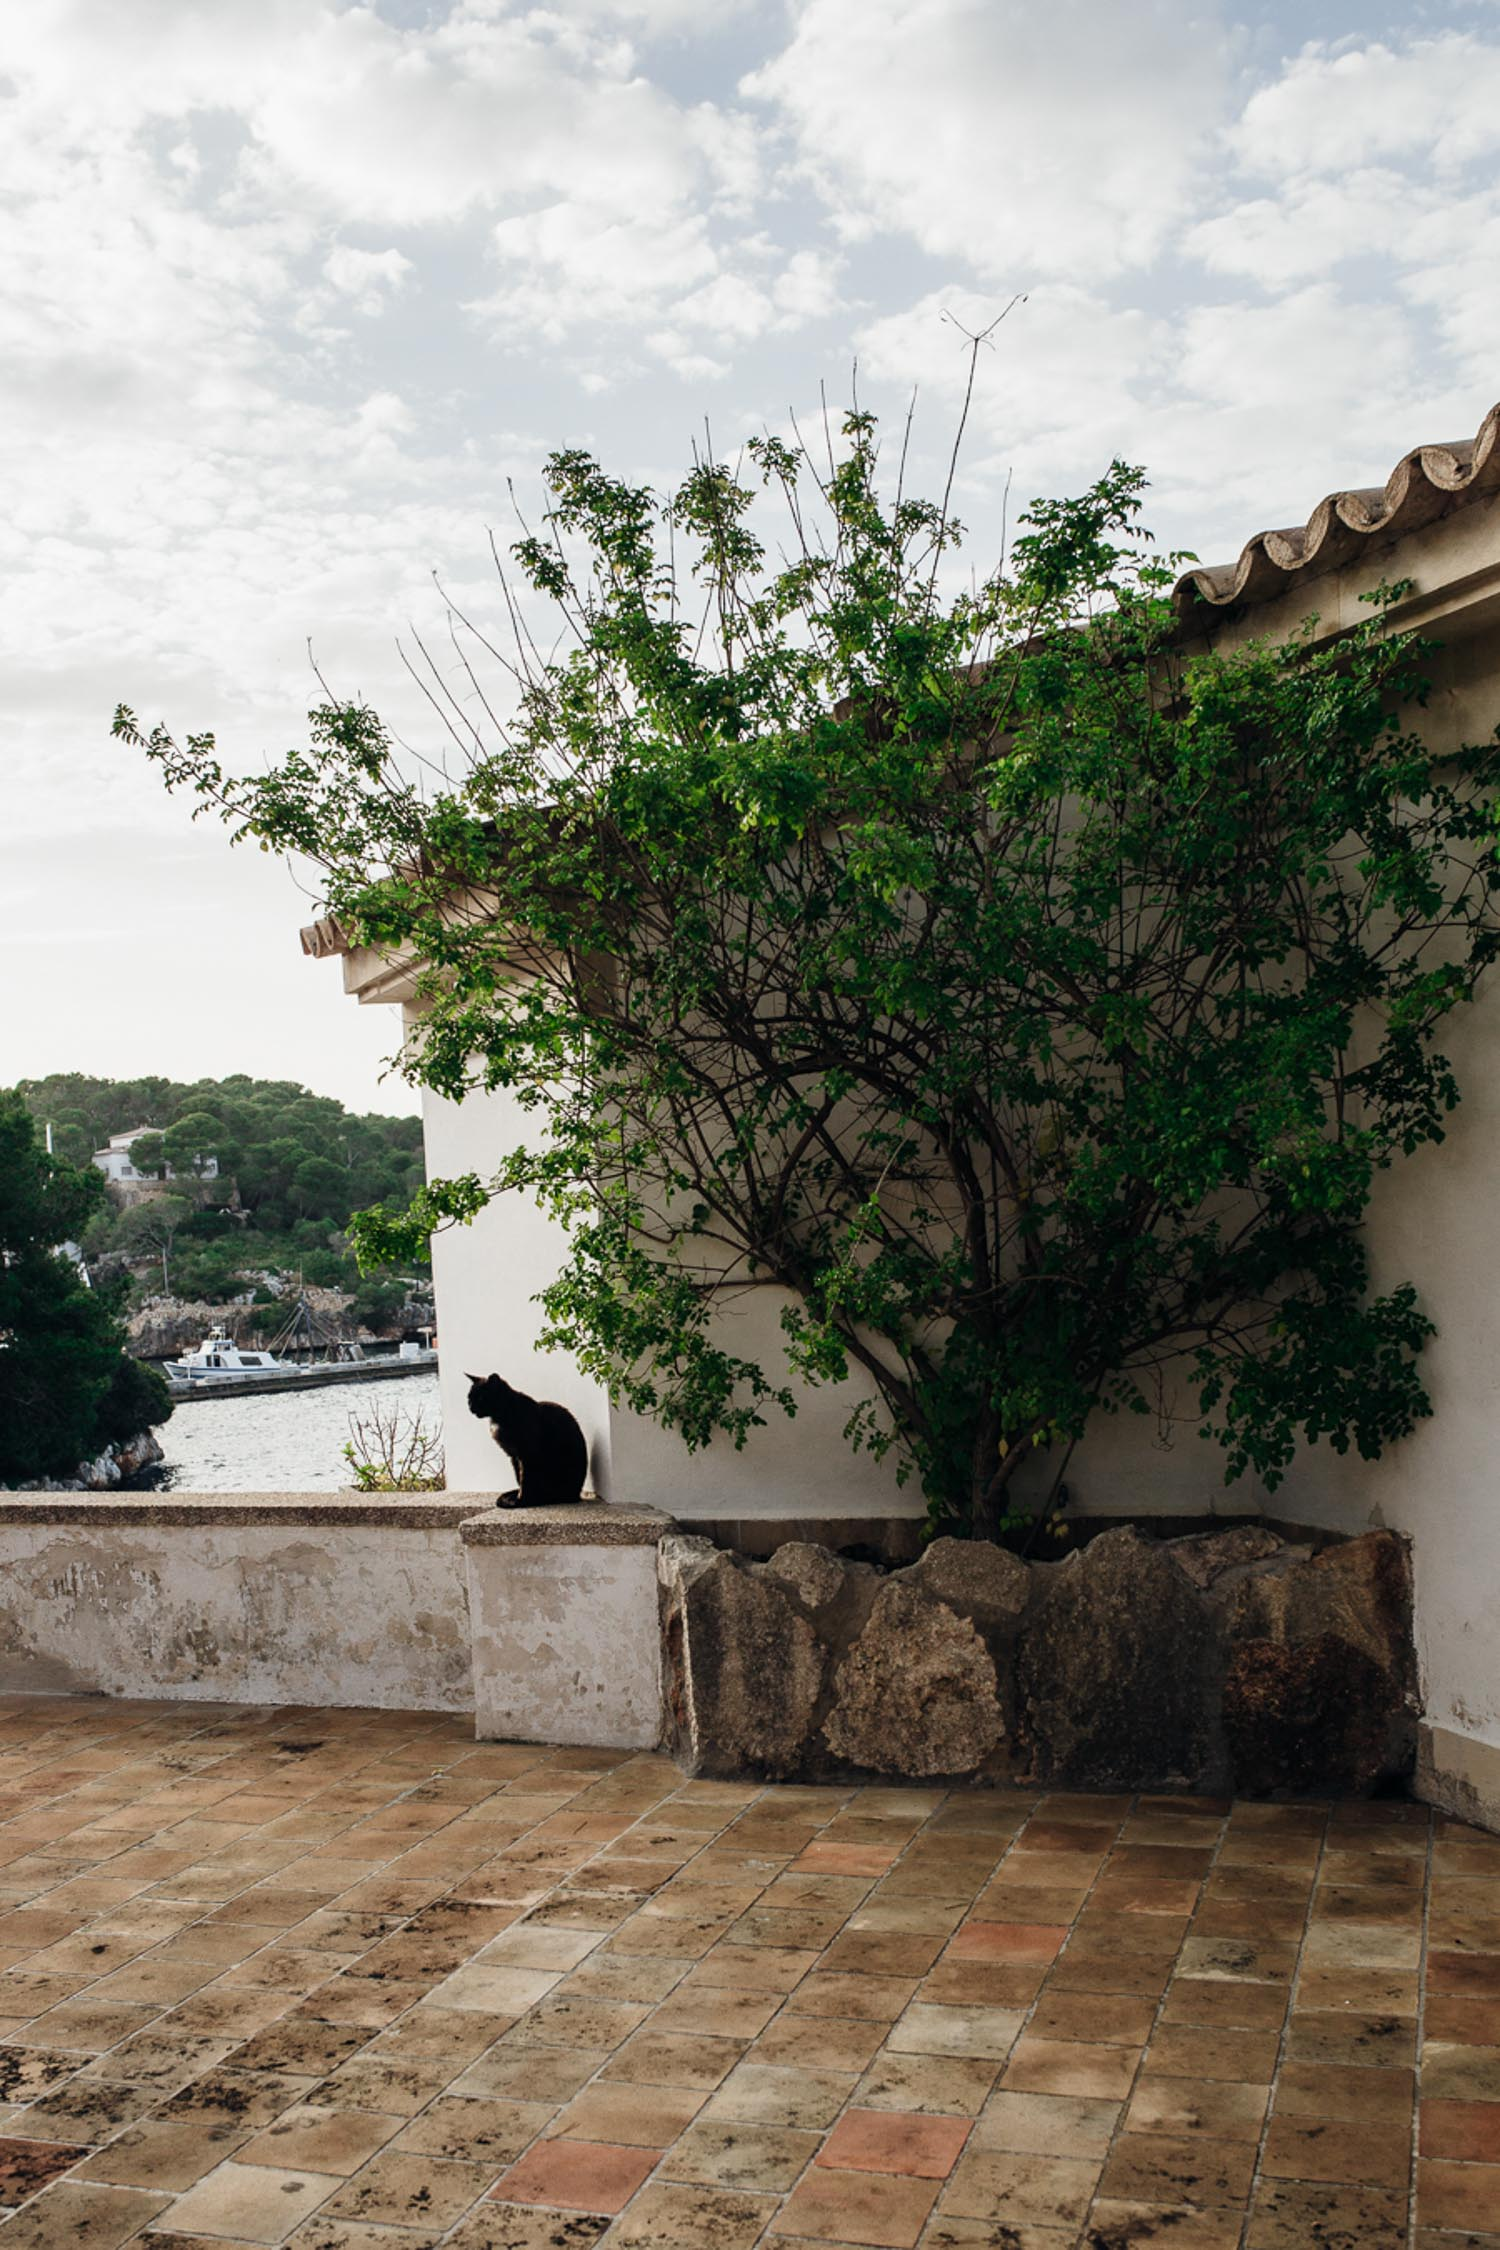 Cala-figuera-cat-on-wall-Mallorca-1526.jpg